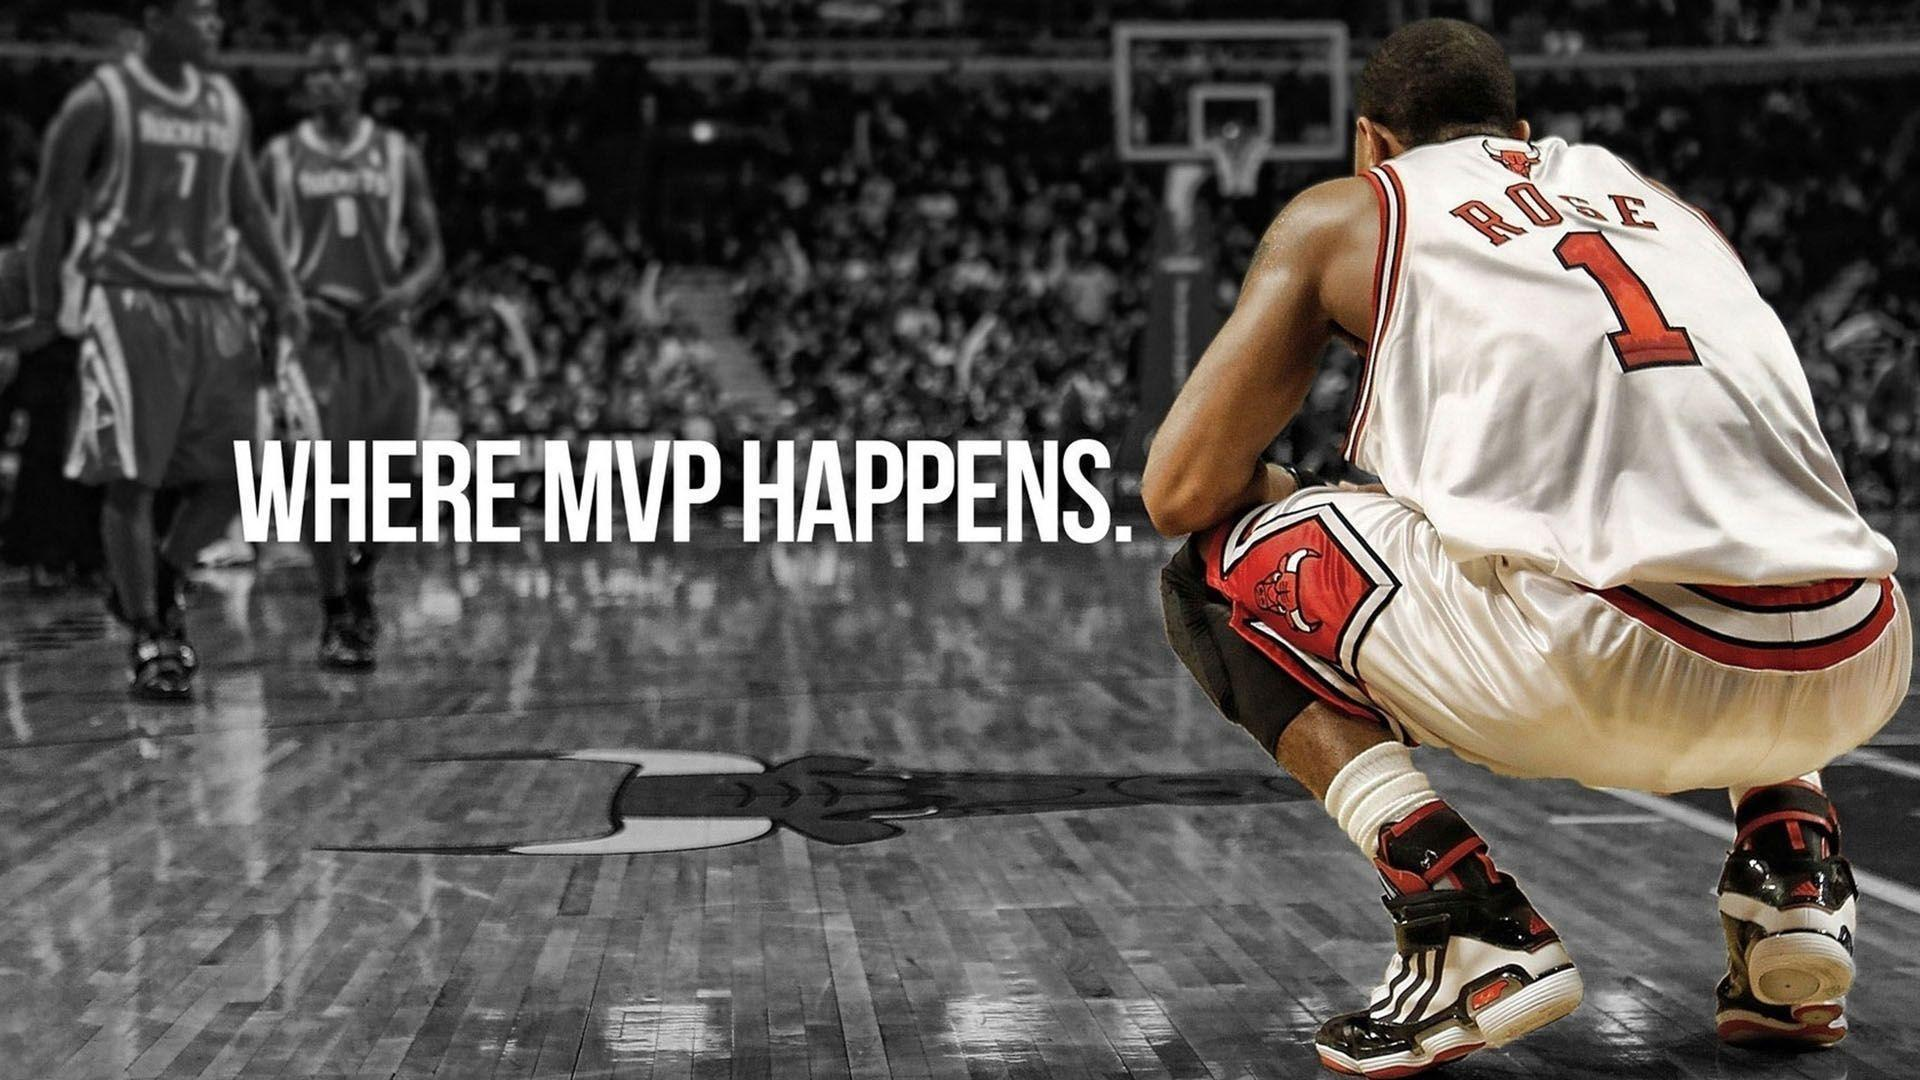 Derrick Rose 2016 Wallpapers 1920x1080